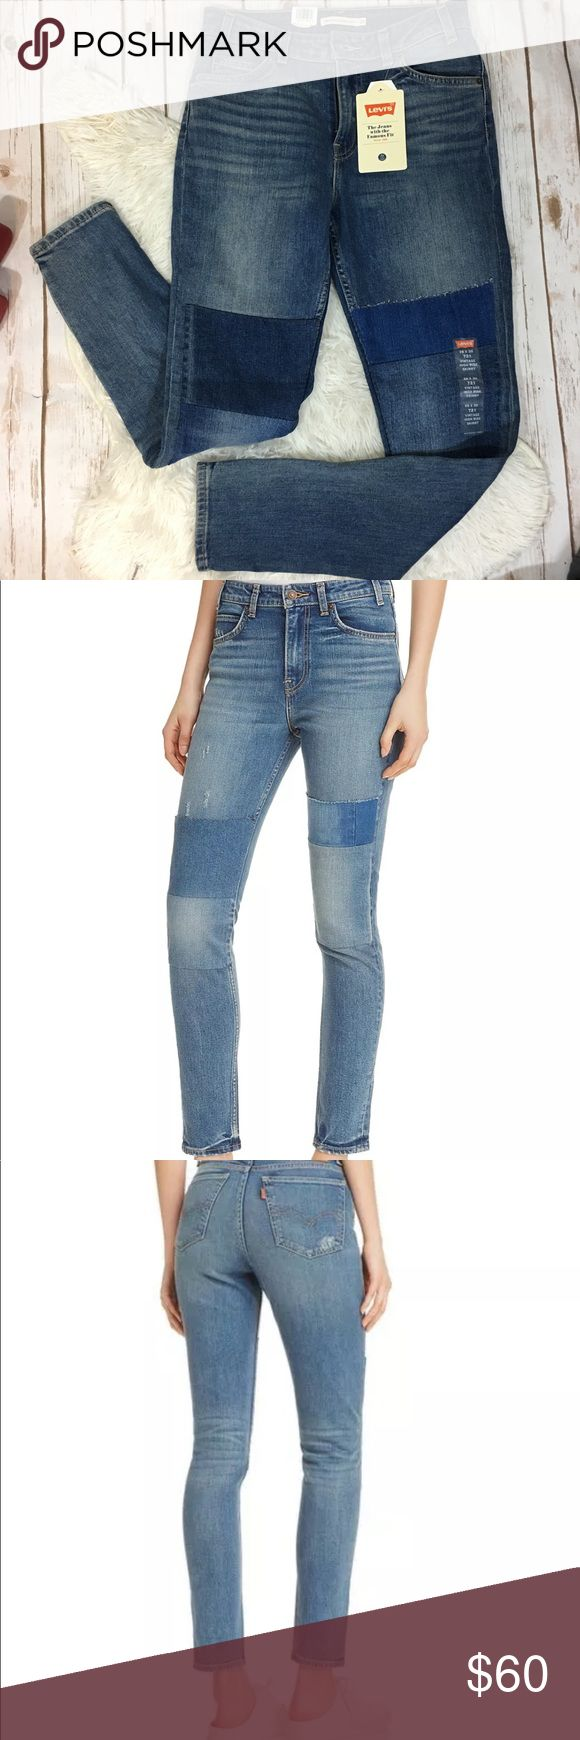 """Levi's Vintage high rise skinny 721 28x30 Materials: 99% Cotton, 1% Elastane, Stretch denim  High rise: 12"""" front rise  Slim through hip and thigh  28 inchesx 30 inches -I accept reasonable offers through offer button  -ask questions if any.  Wear & Care: Machine wash cold.  Country of Origin: Pakistan  Color: Courage Blue Levi's Jeans Skinny"""